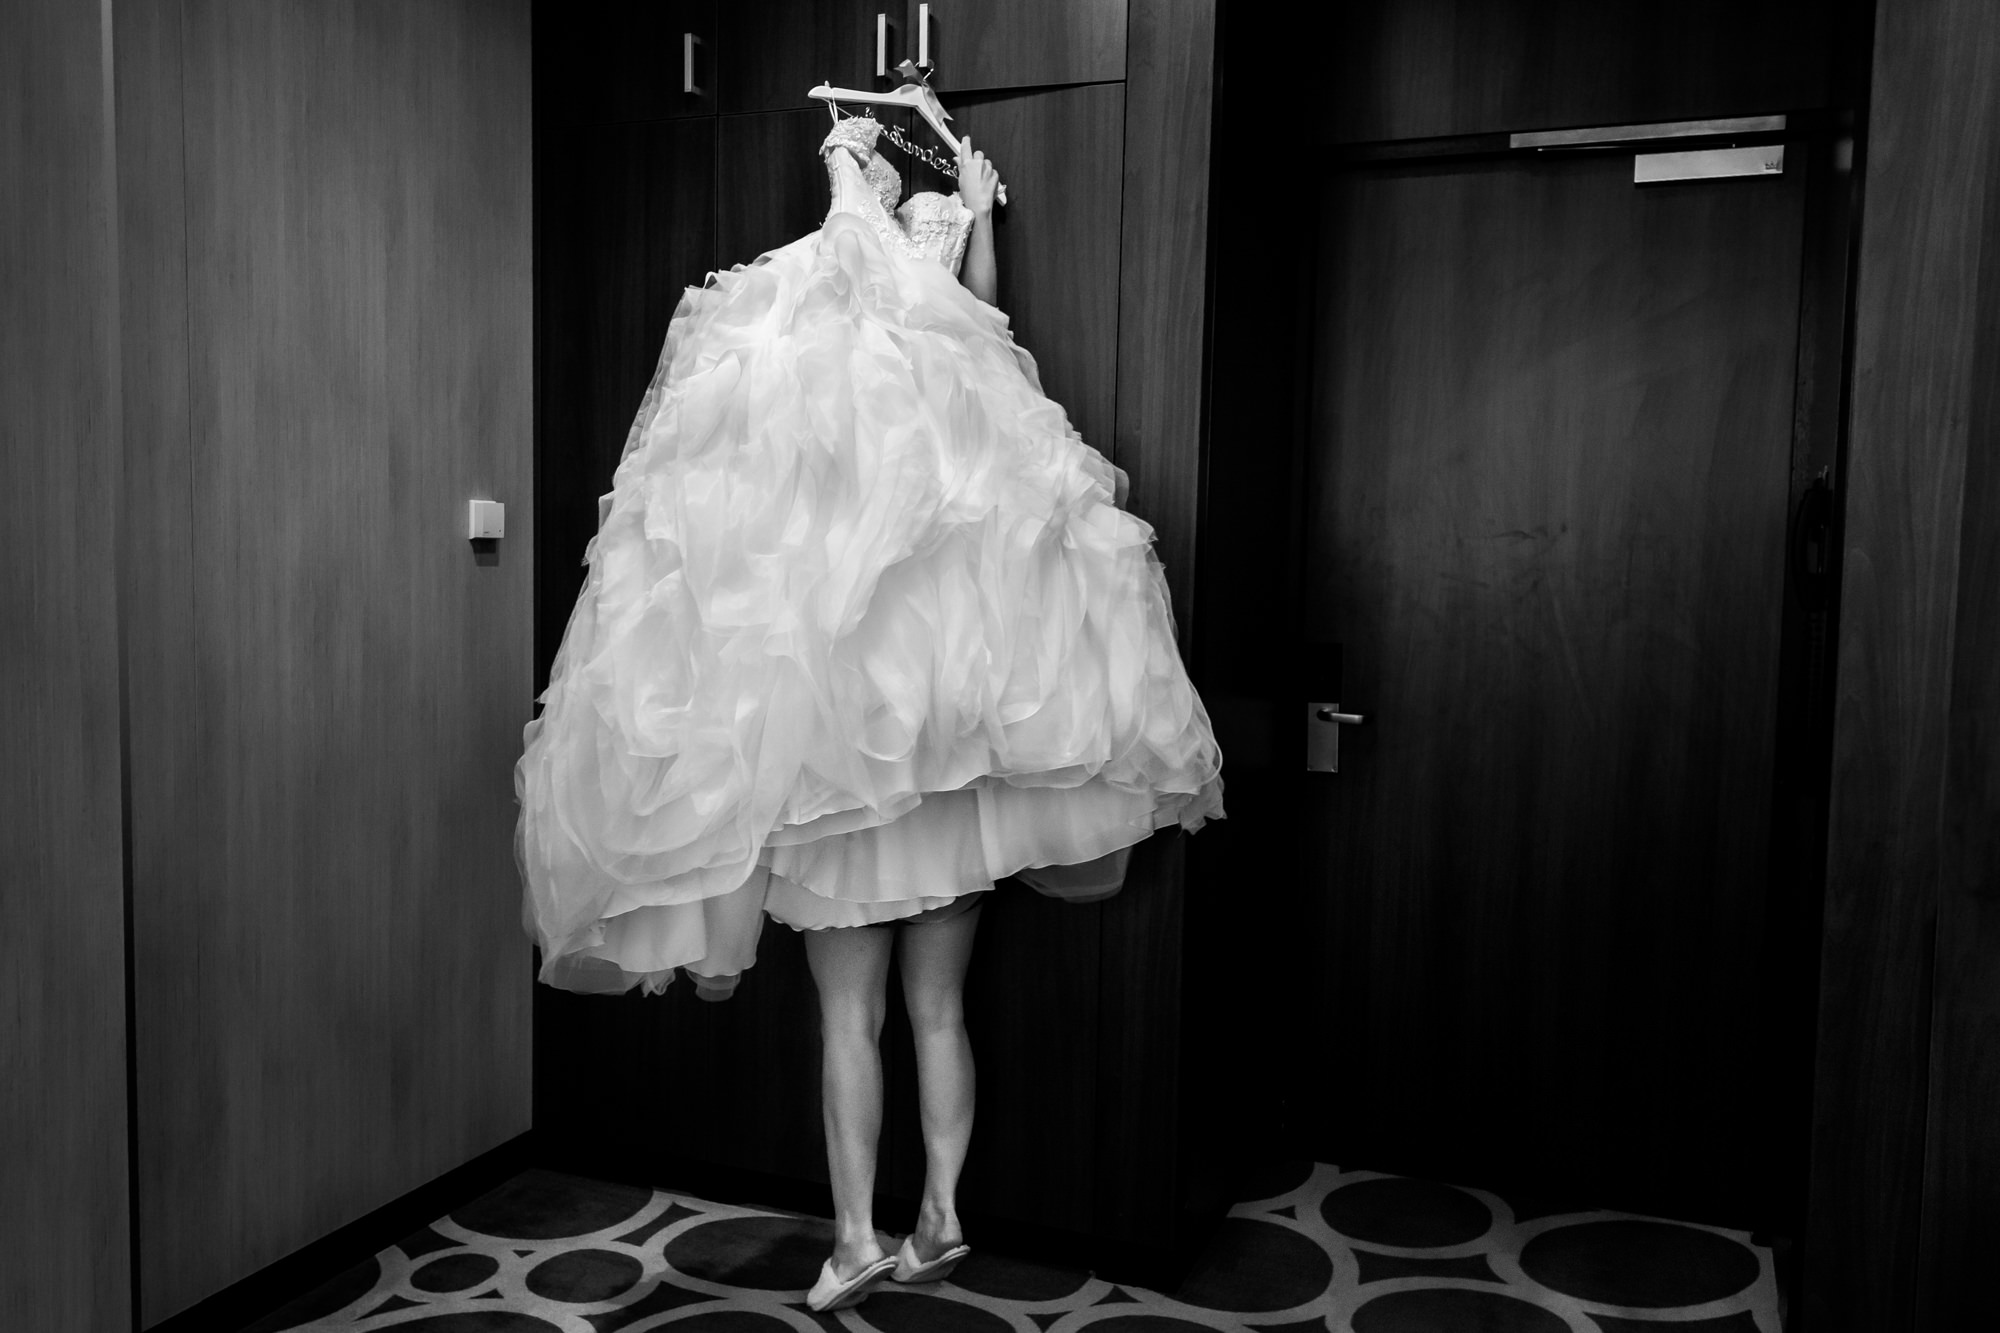 Funny image of bride under gown photo by Fotobelle: Isabelle Hattink